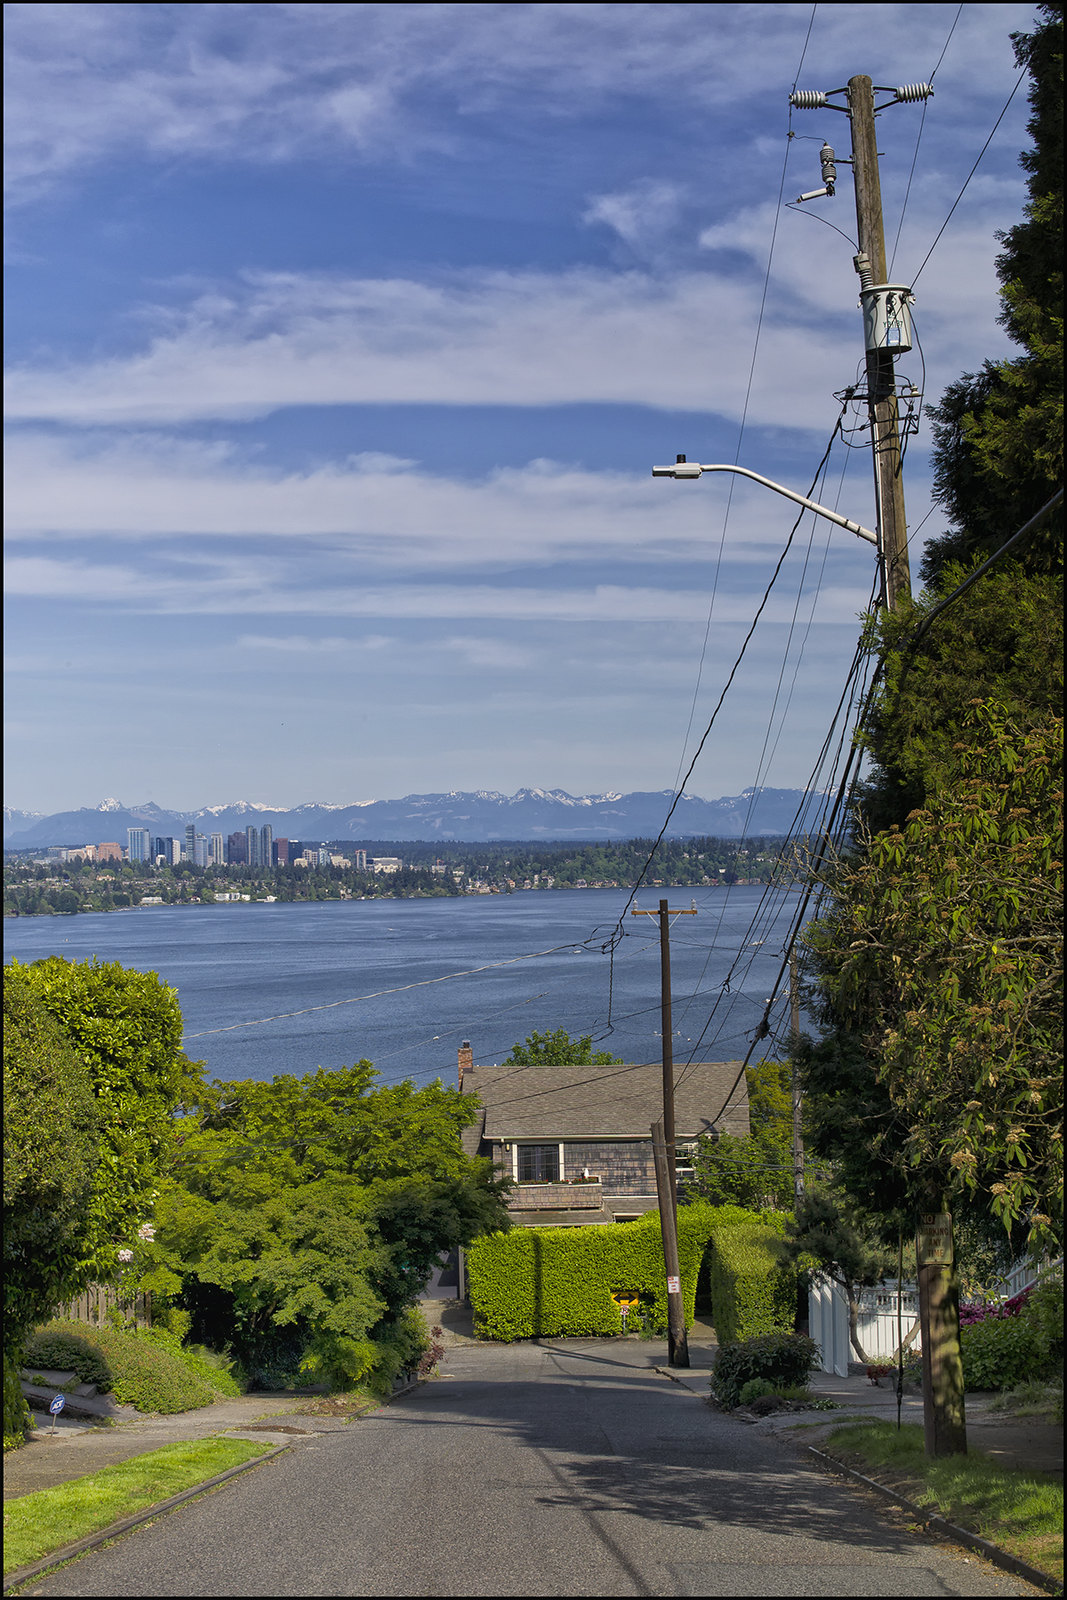 View of the City of Bellevue & Cascade Mountain Range Across Lake Washington from Seattle